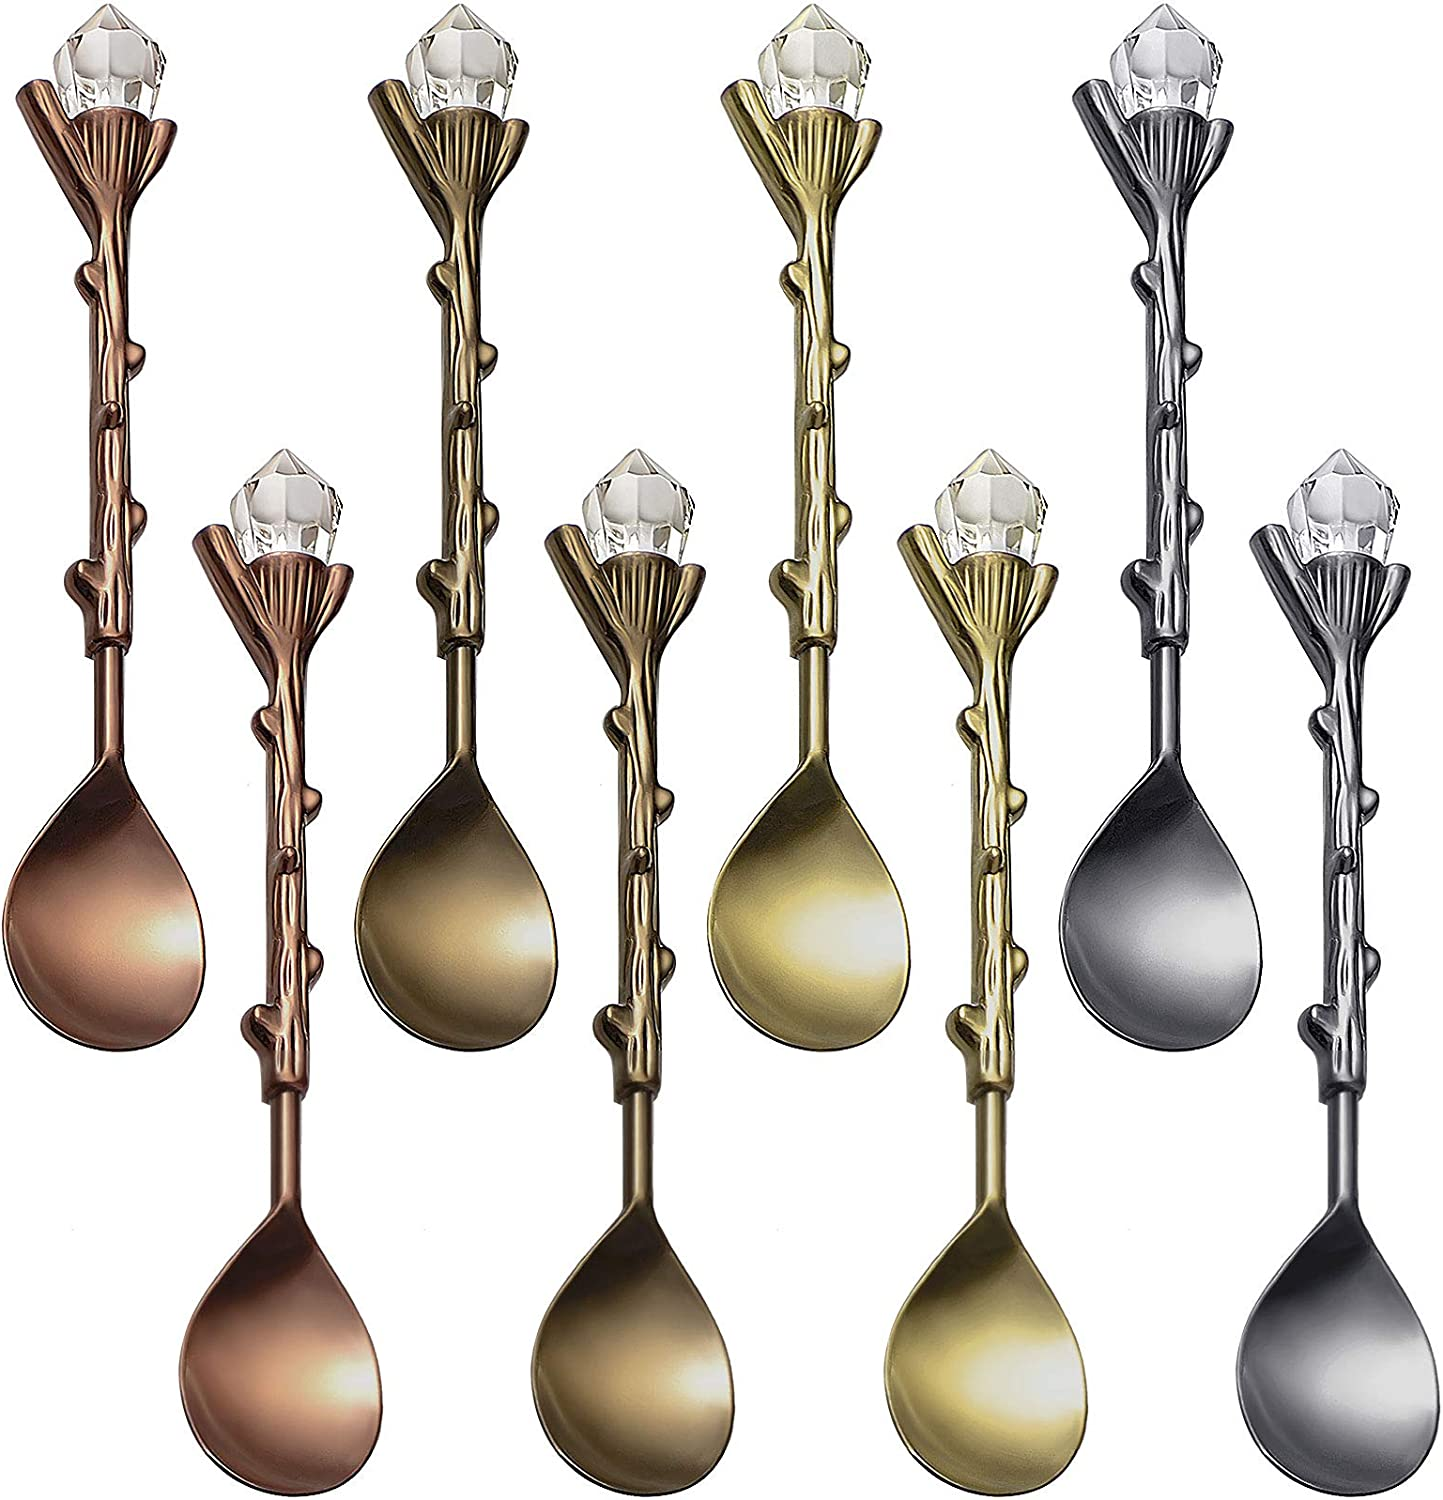 Retro Coffee Tea Mini Ice Cream Dessert Crystal Spoon Tea Spoons Fancy Little Spoons Scoop Crystal Head Stirring Spoons Dessert Ice Cream Scoop for Cafe Home Office Bar Gadgets, 4 Colors (8 Pieces)